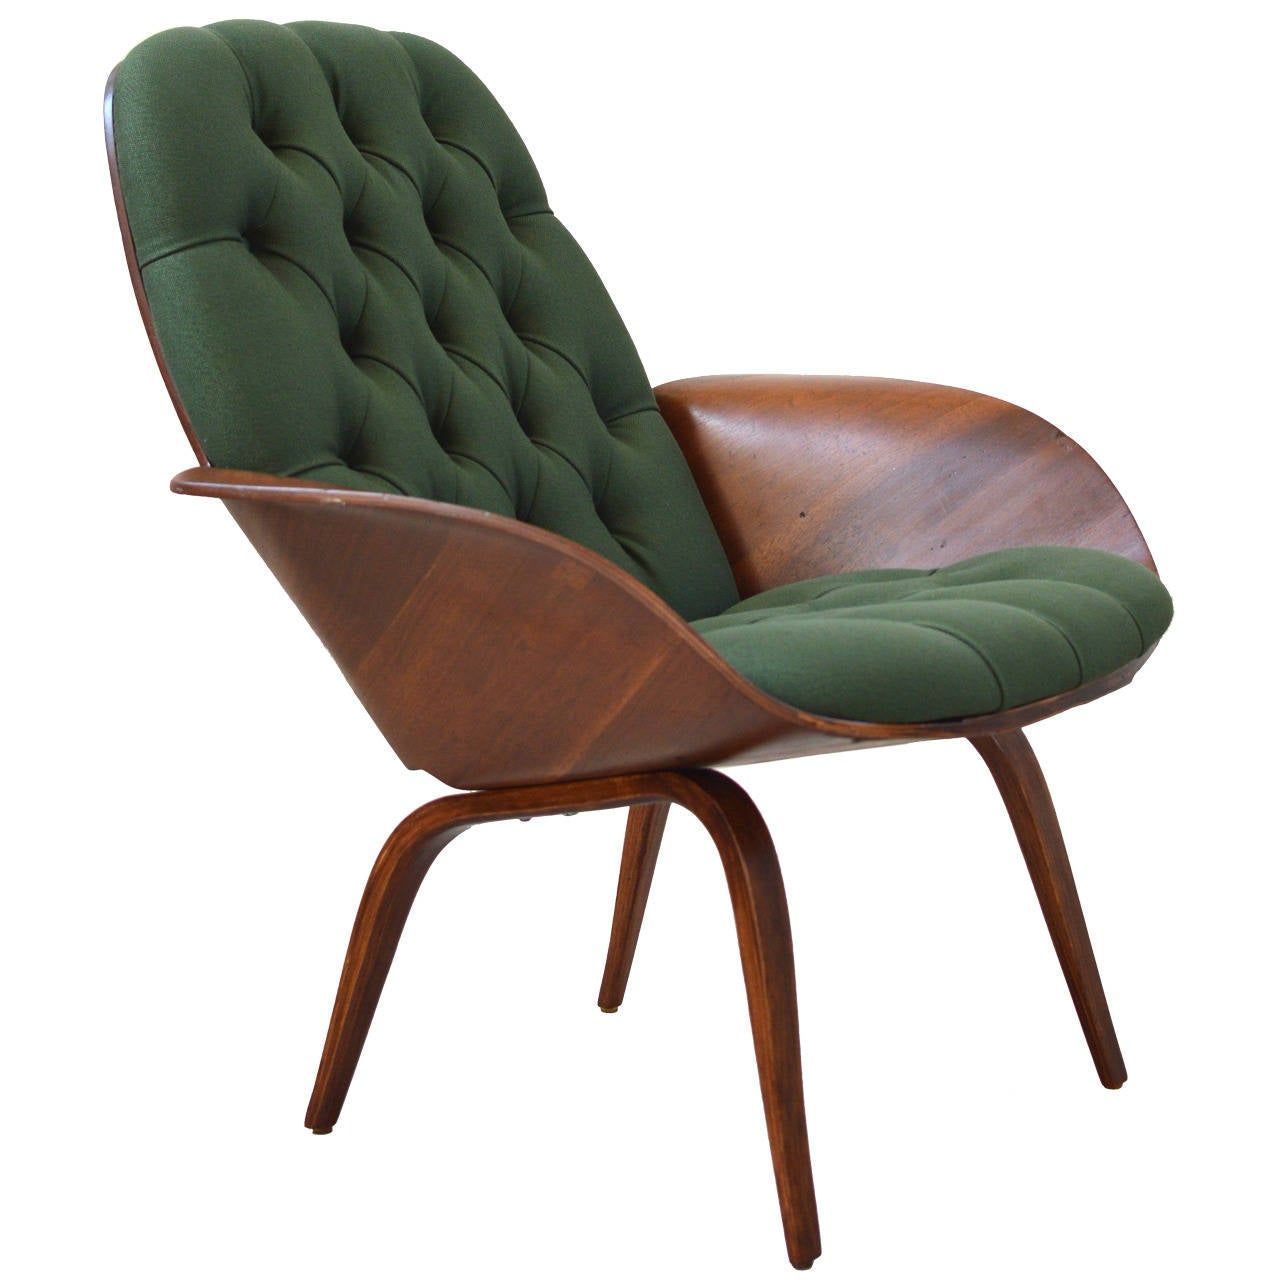 Plycraft Bentwood Lounge Chair by George Mulhauser at 1stdibs